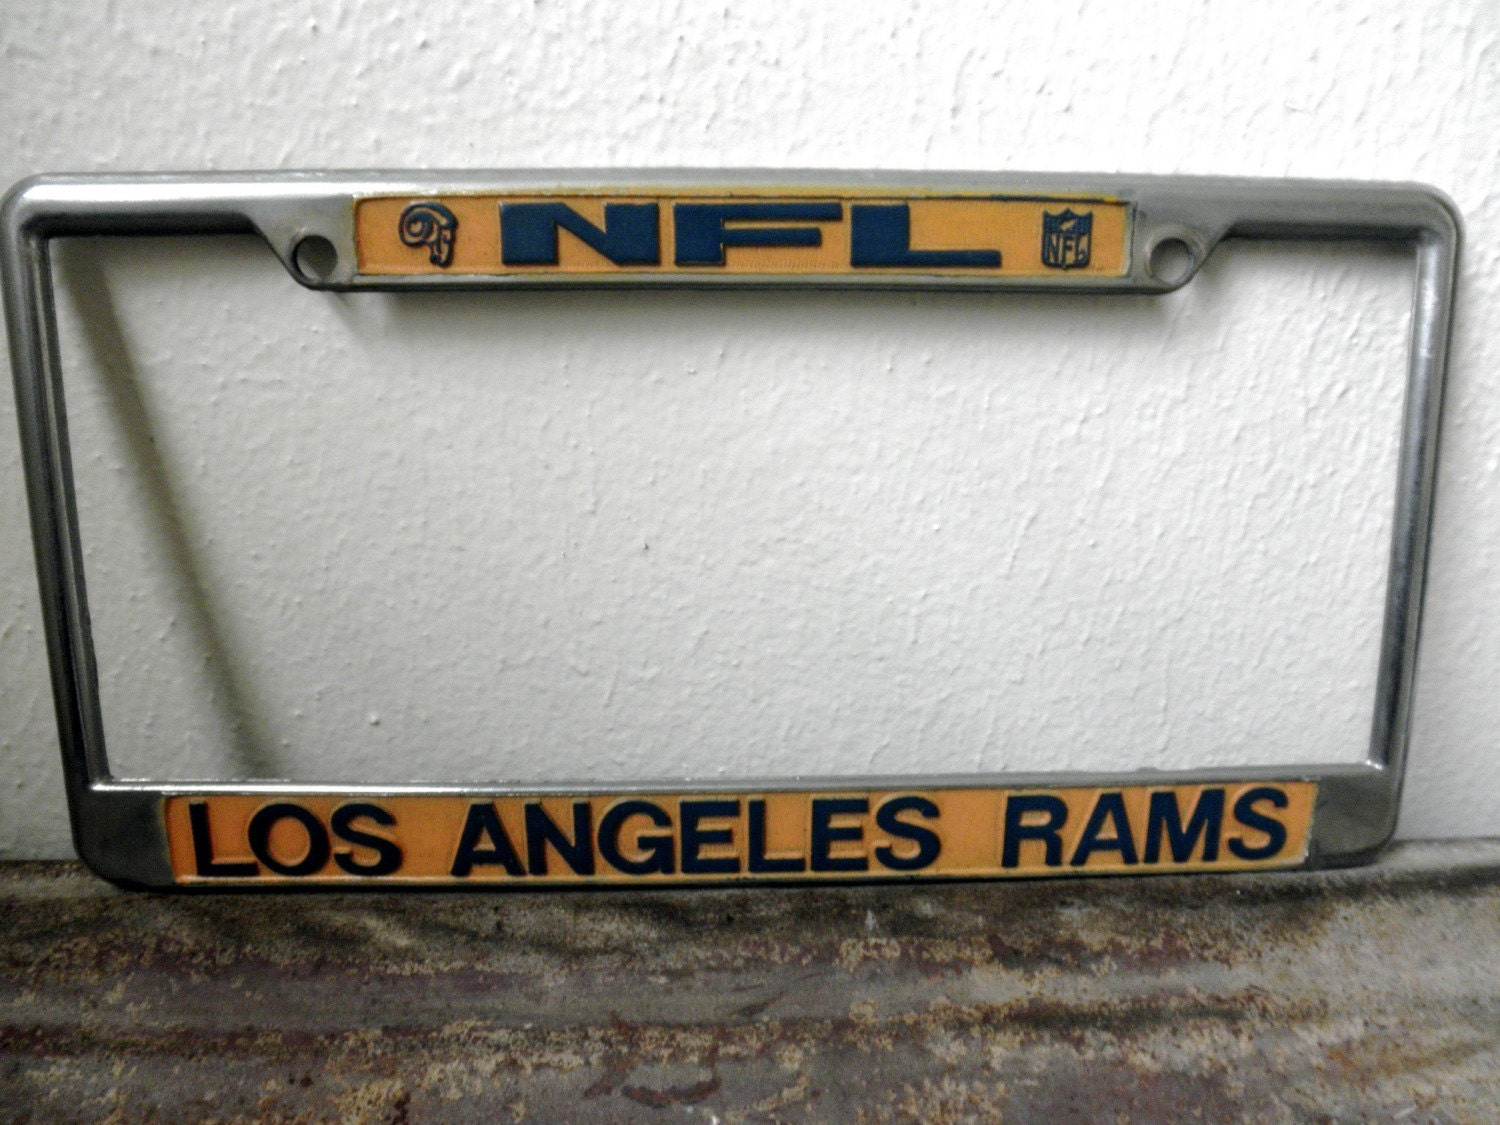 Vintage La Rams License Plate Frame By Desertmoss On Etsy